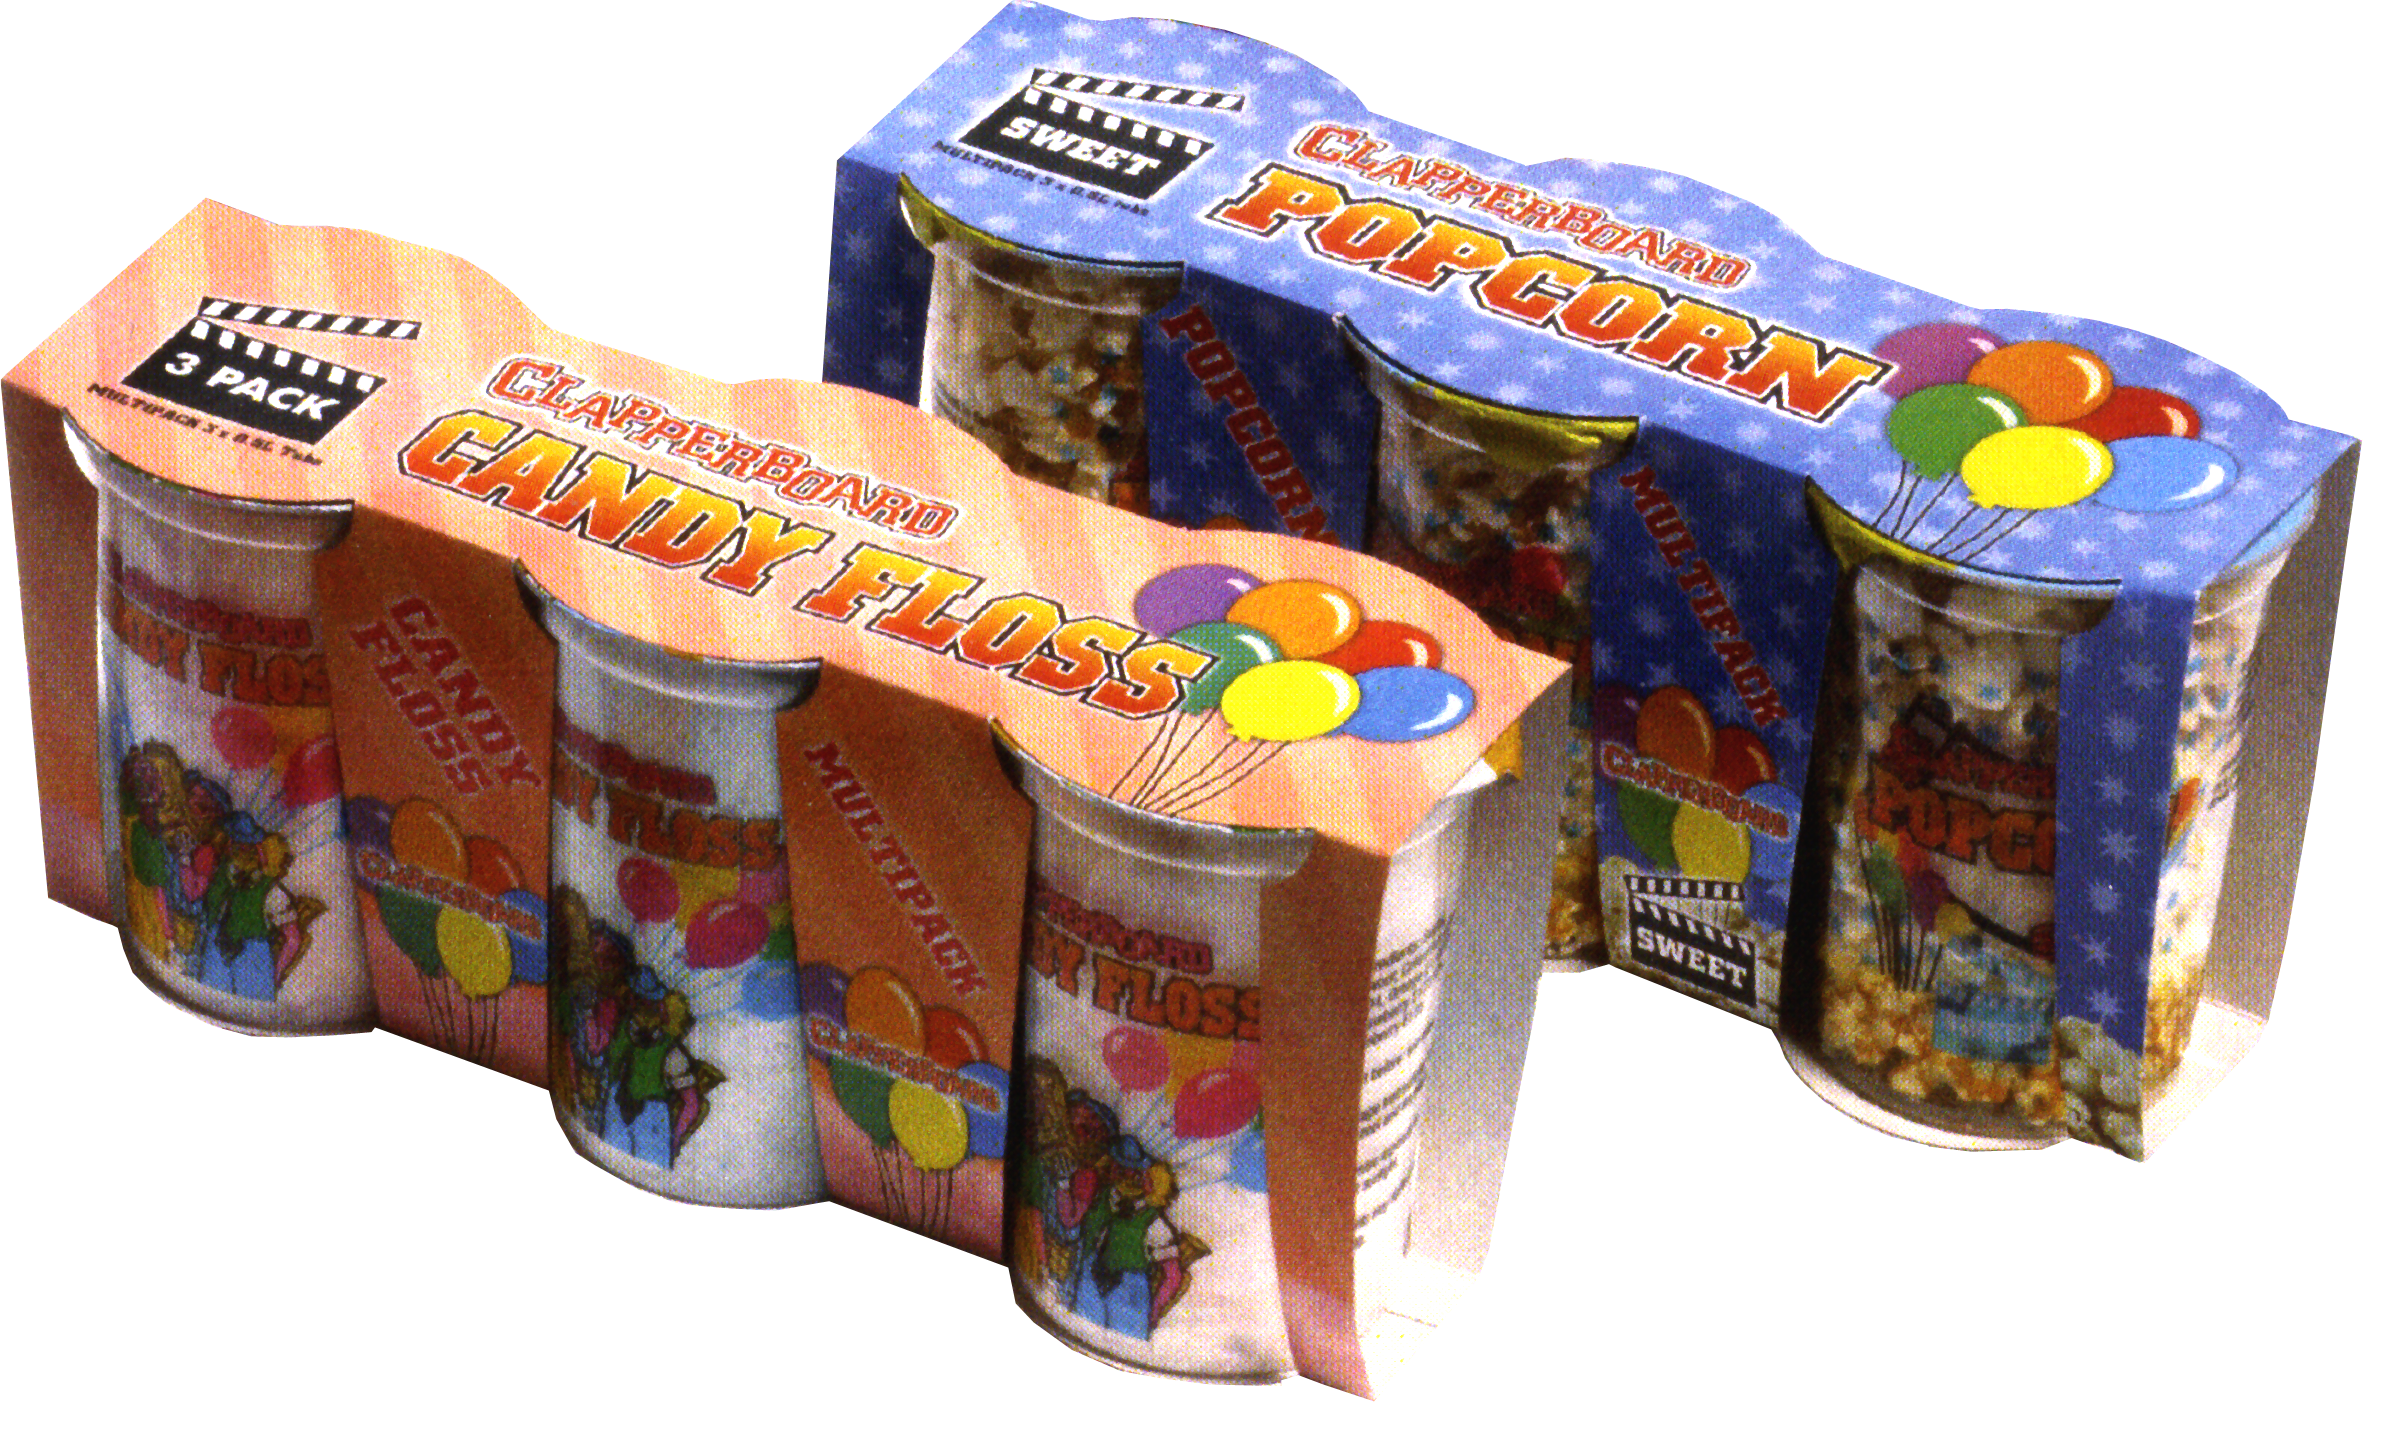 CON 128 Clapperboard 3 Pack Candy Floss & Popcorn